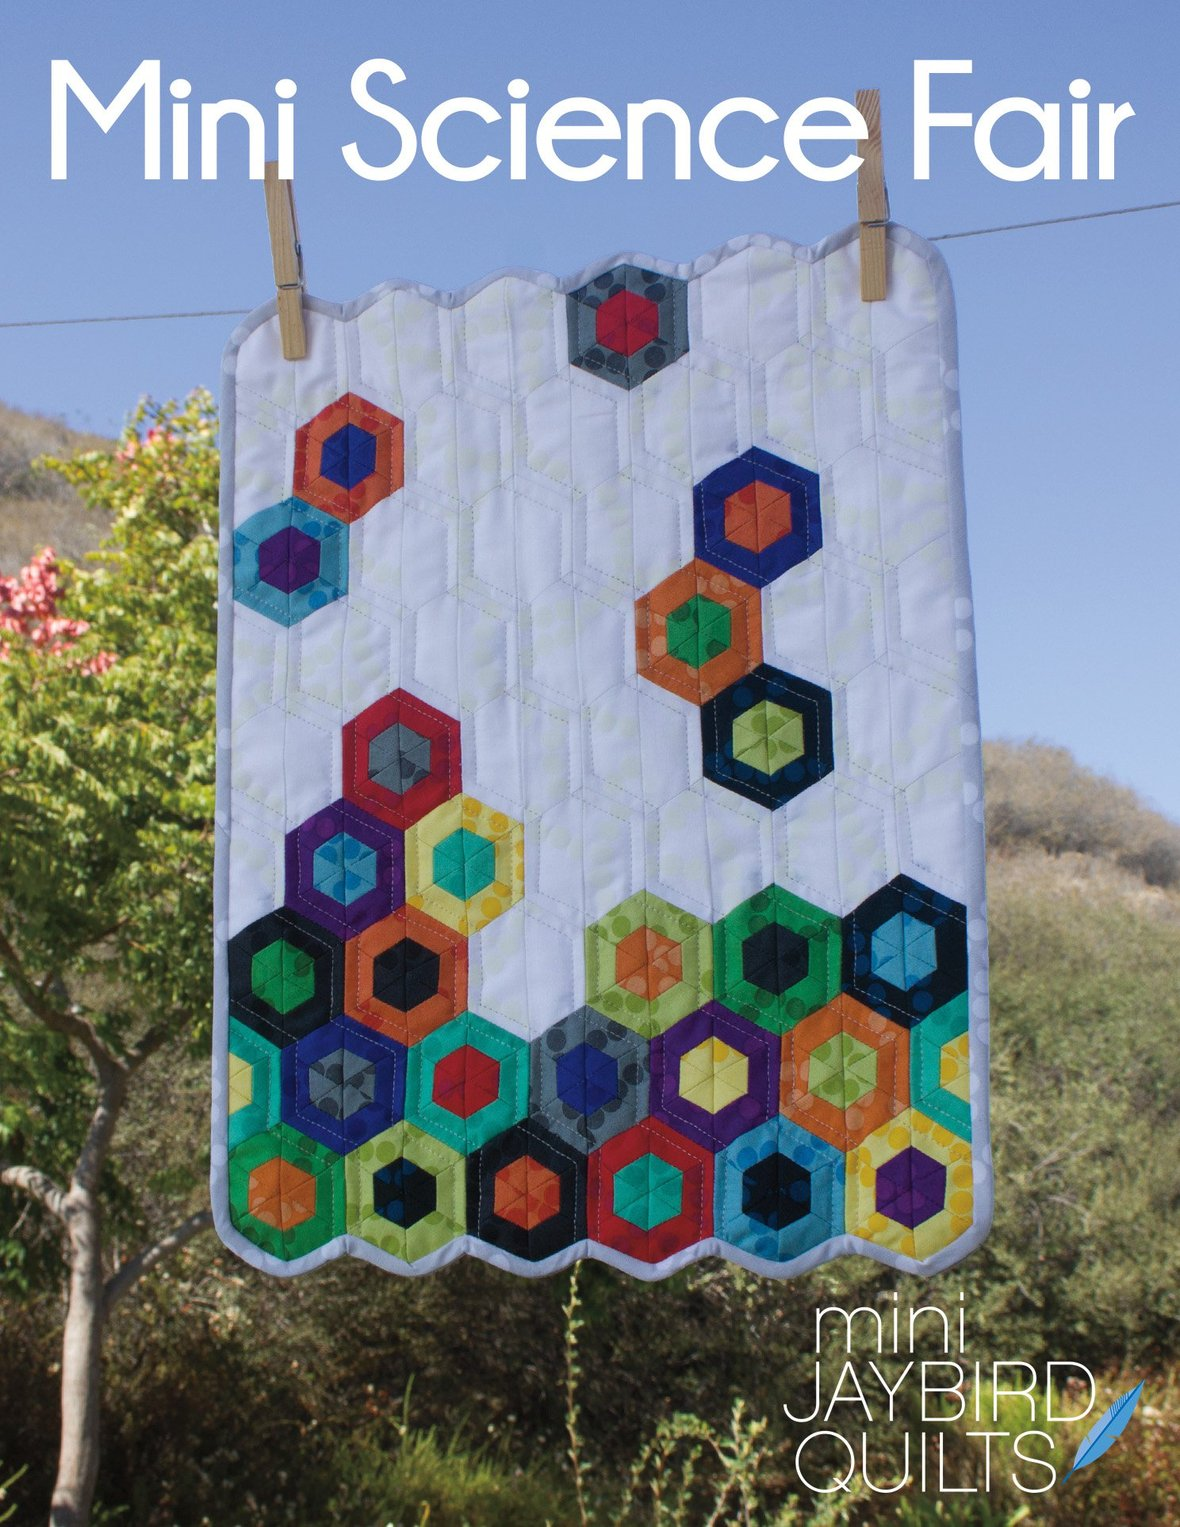 jaybird quilts  mini science fair sewing pattern